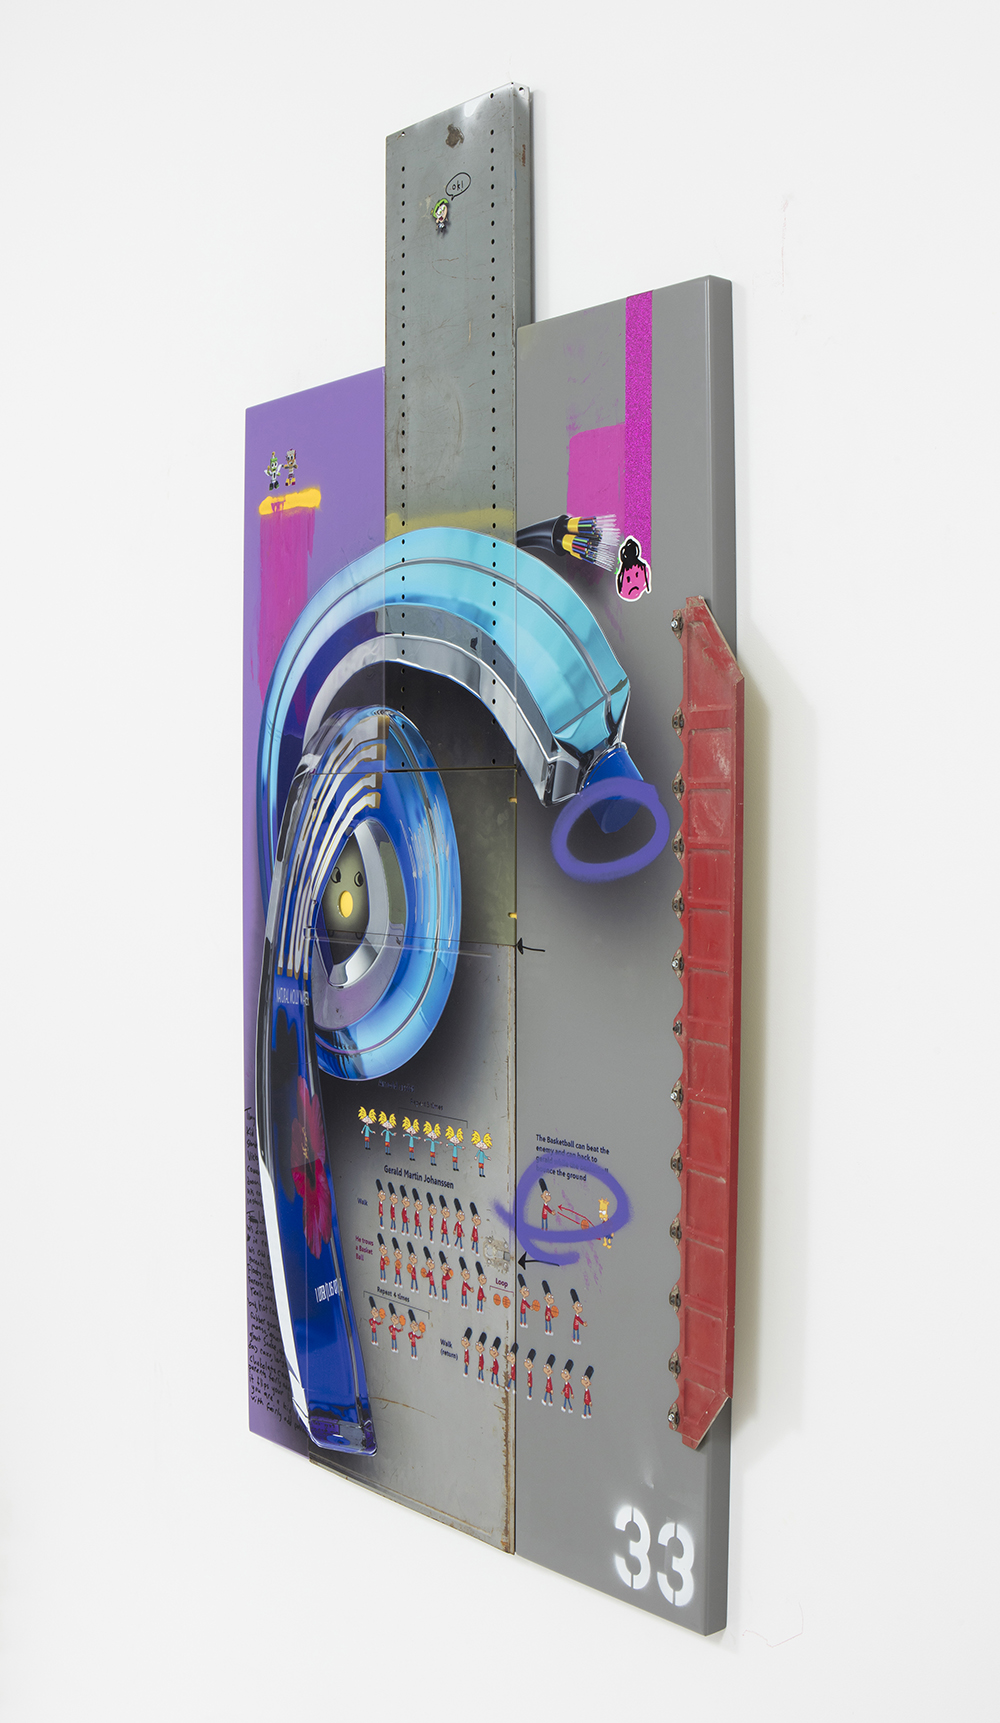 <em>ok!</em>, 2017. UV print, spray paint, stickers, ink, oil on powder coated steel and found metal, 64 x 43 x 3 inches